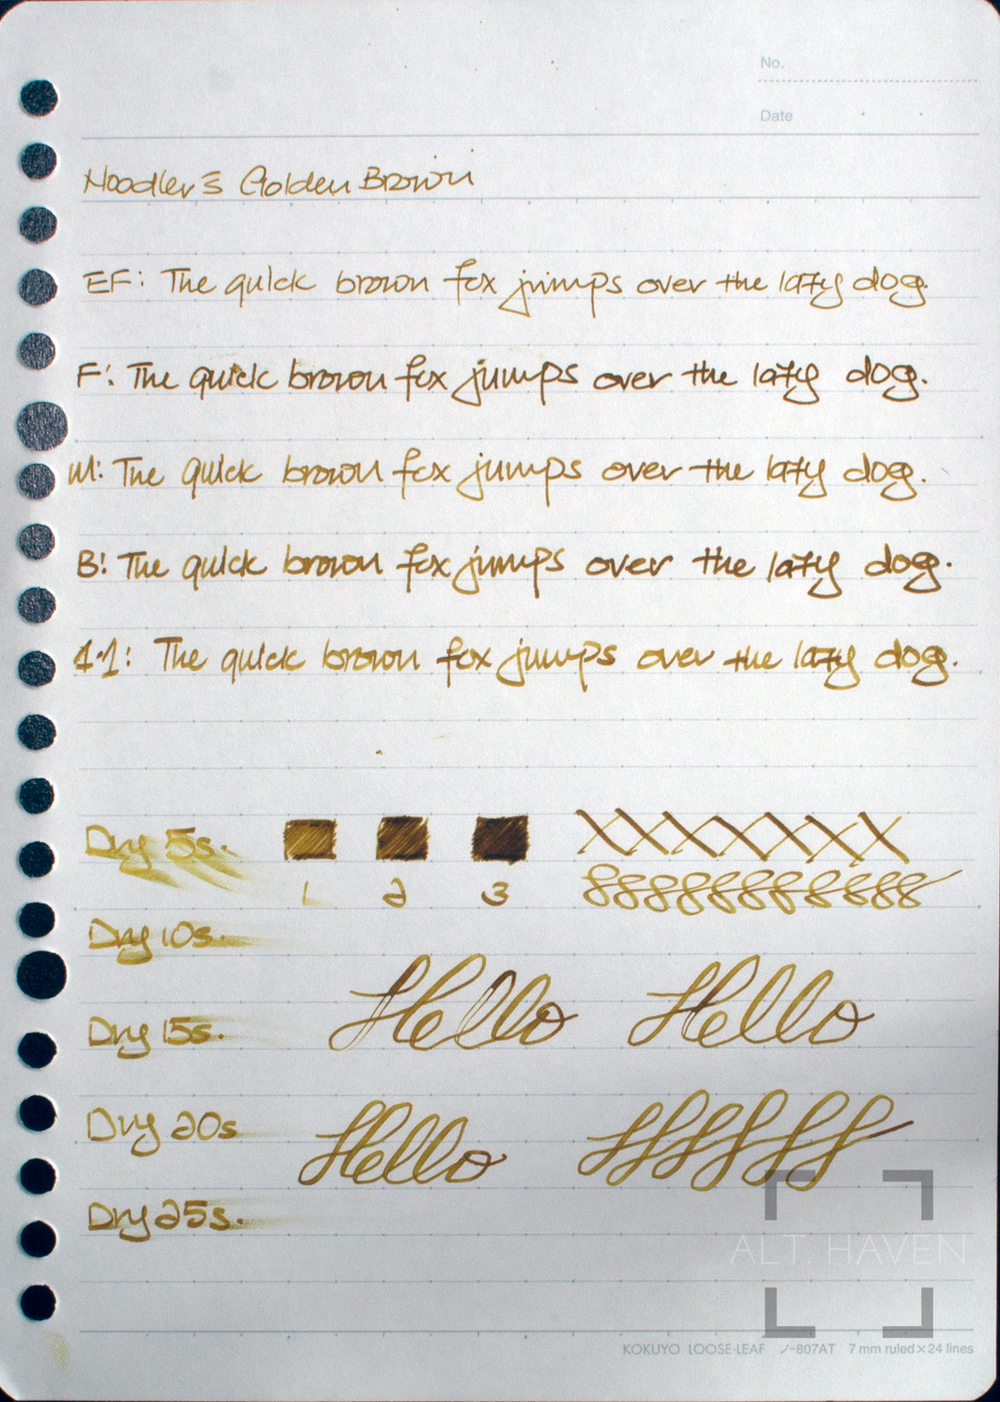 Noodler's Golden Brown 1.jpg